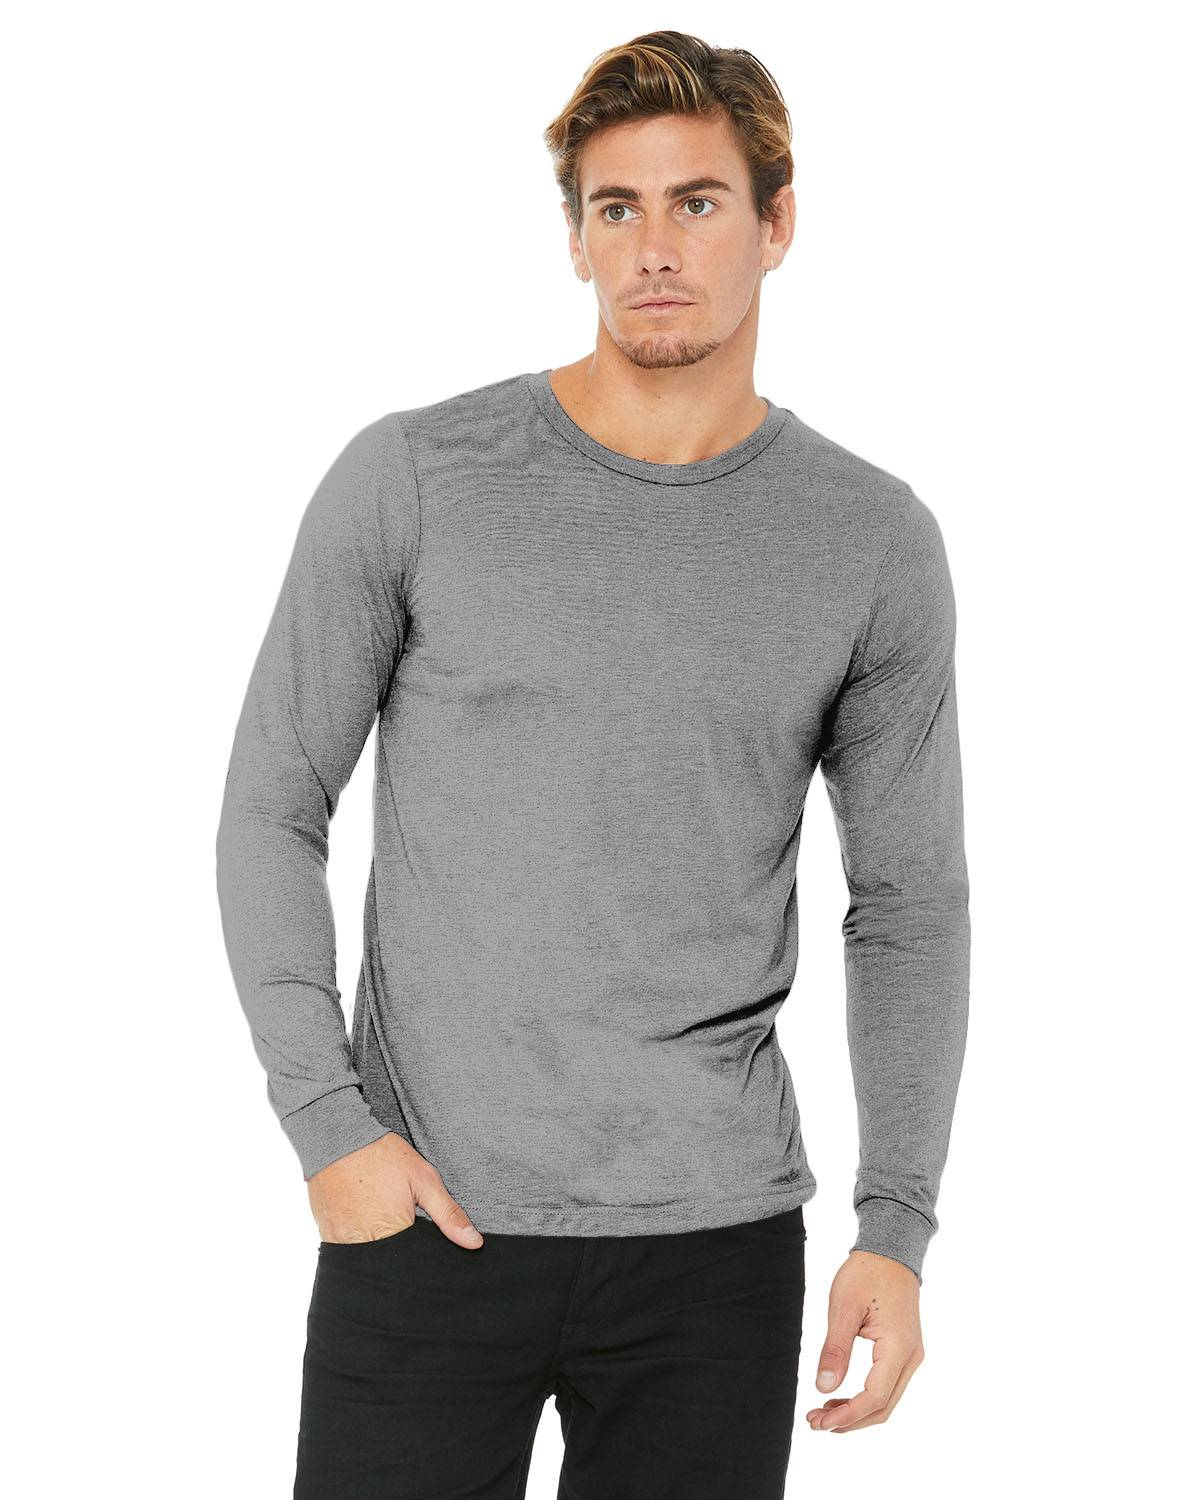 Bella + Canvas Unisex Jersey Long-Sleeve T-Shirt | 3501